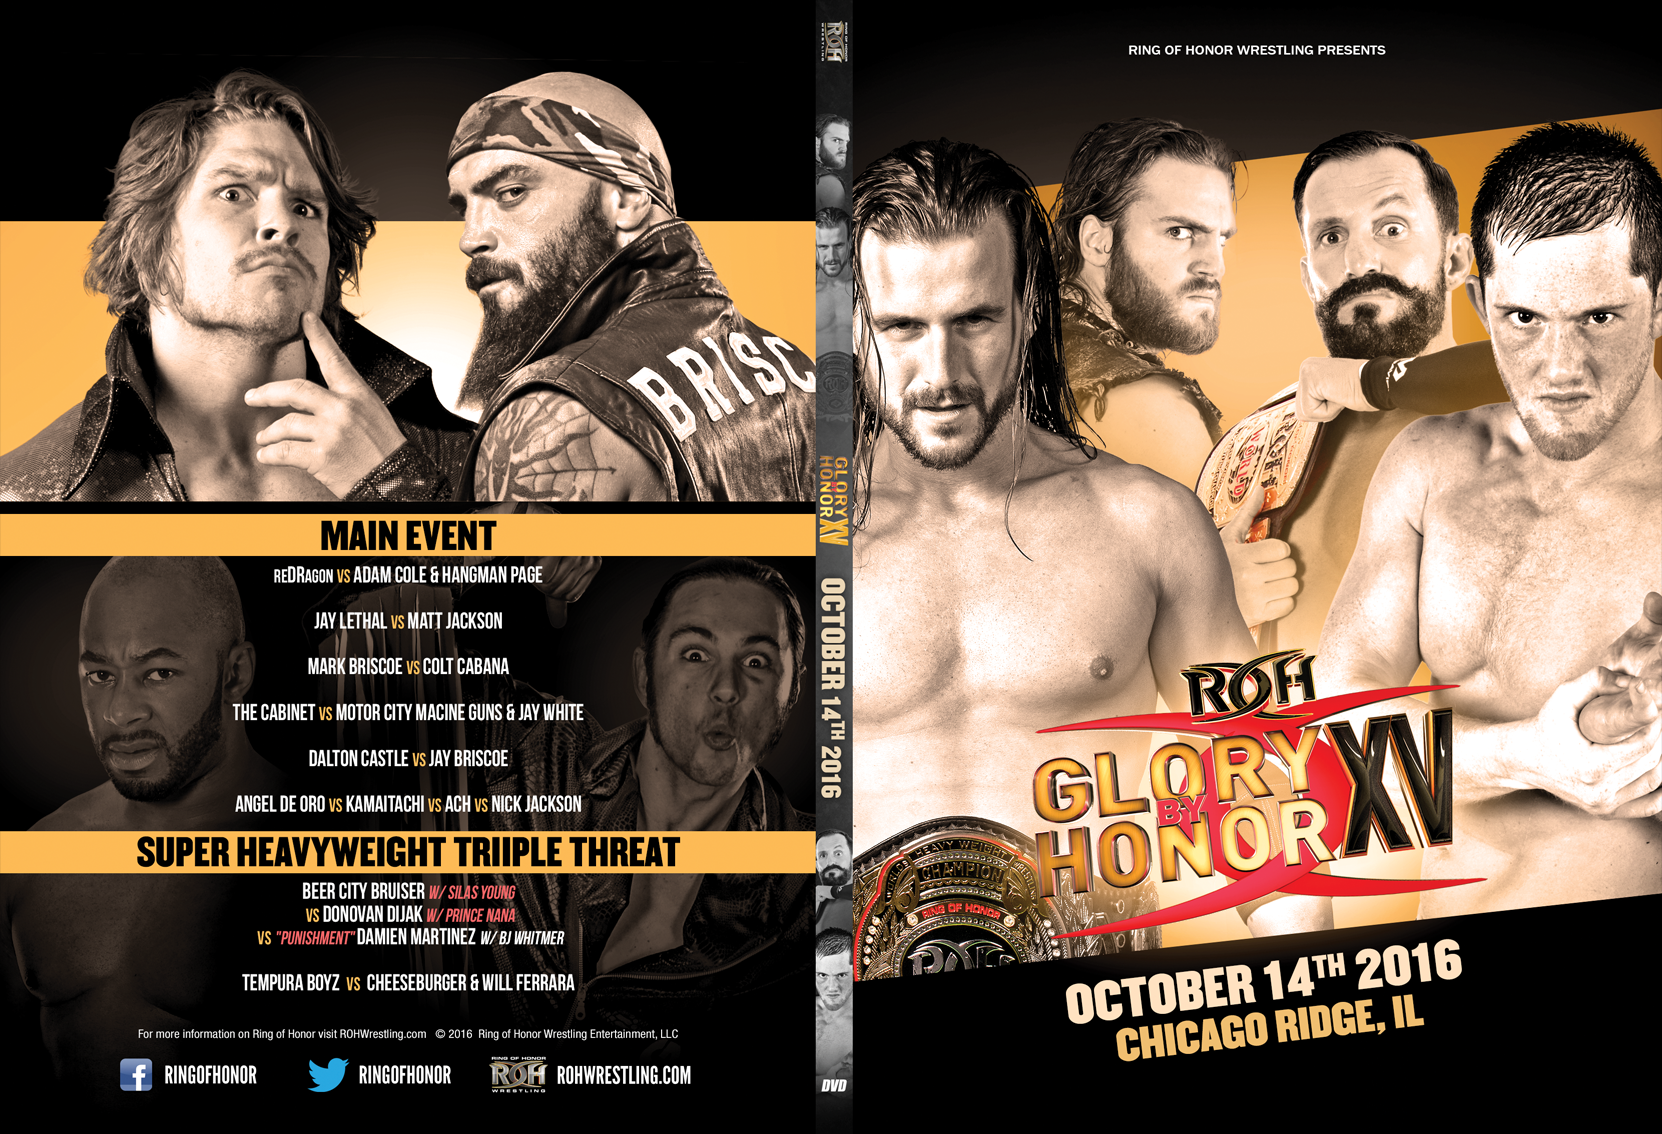 Ring of Honor Glory By Honor